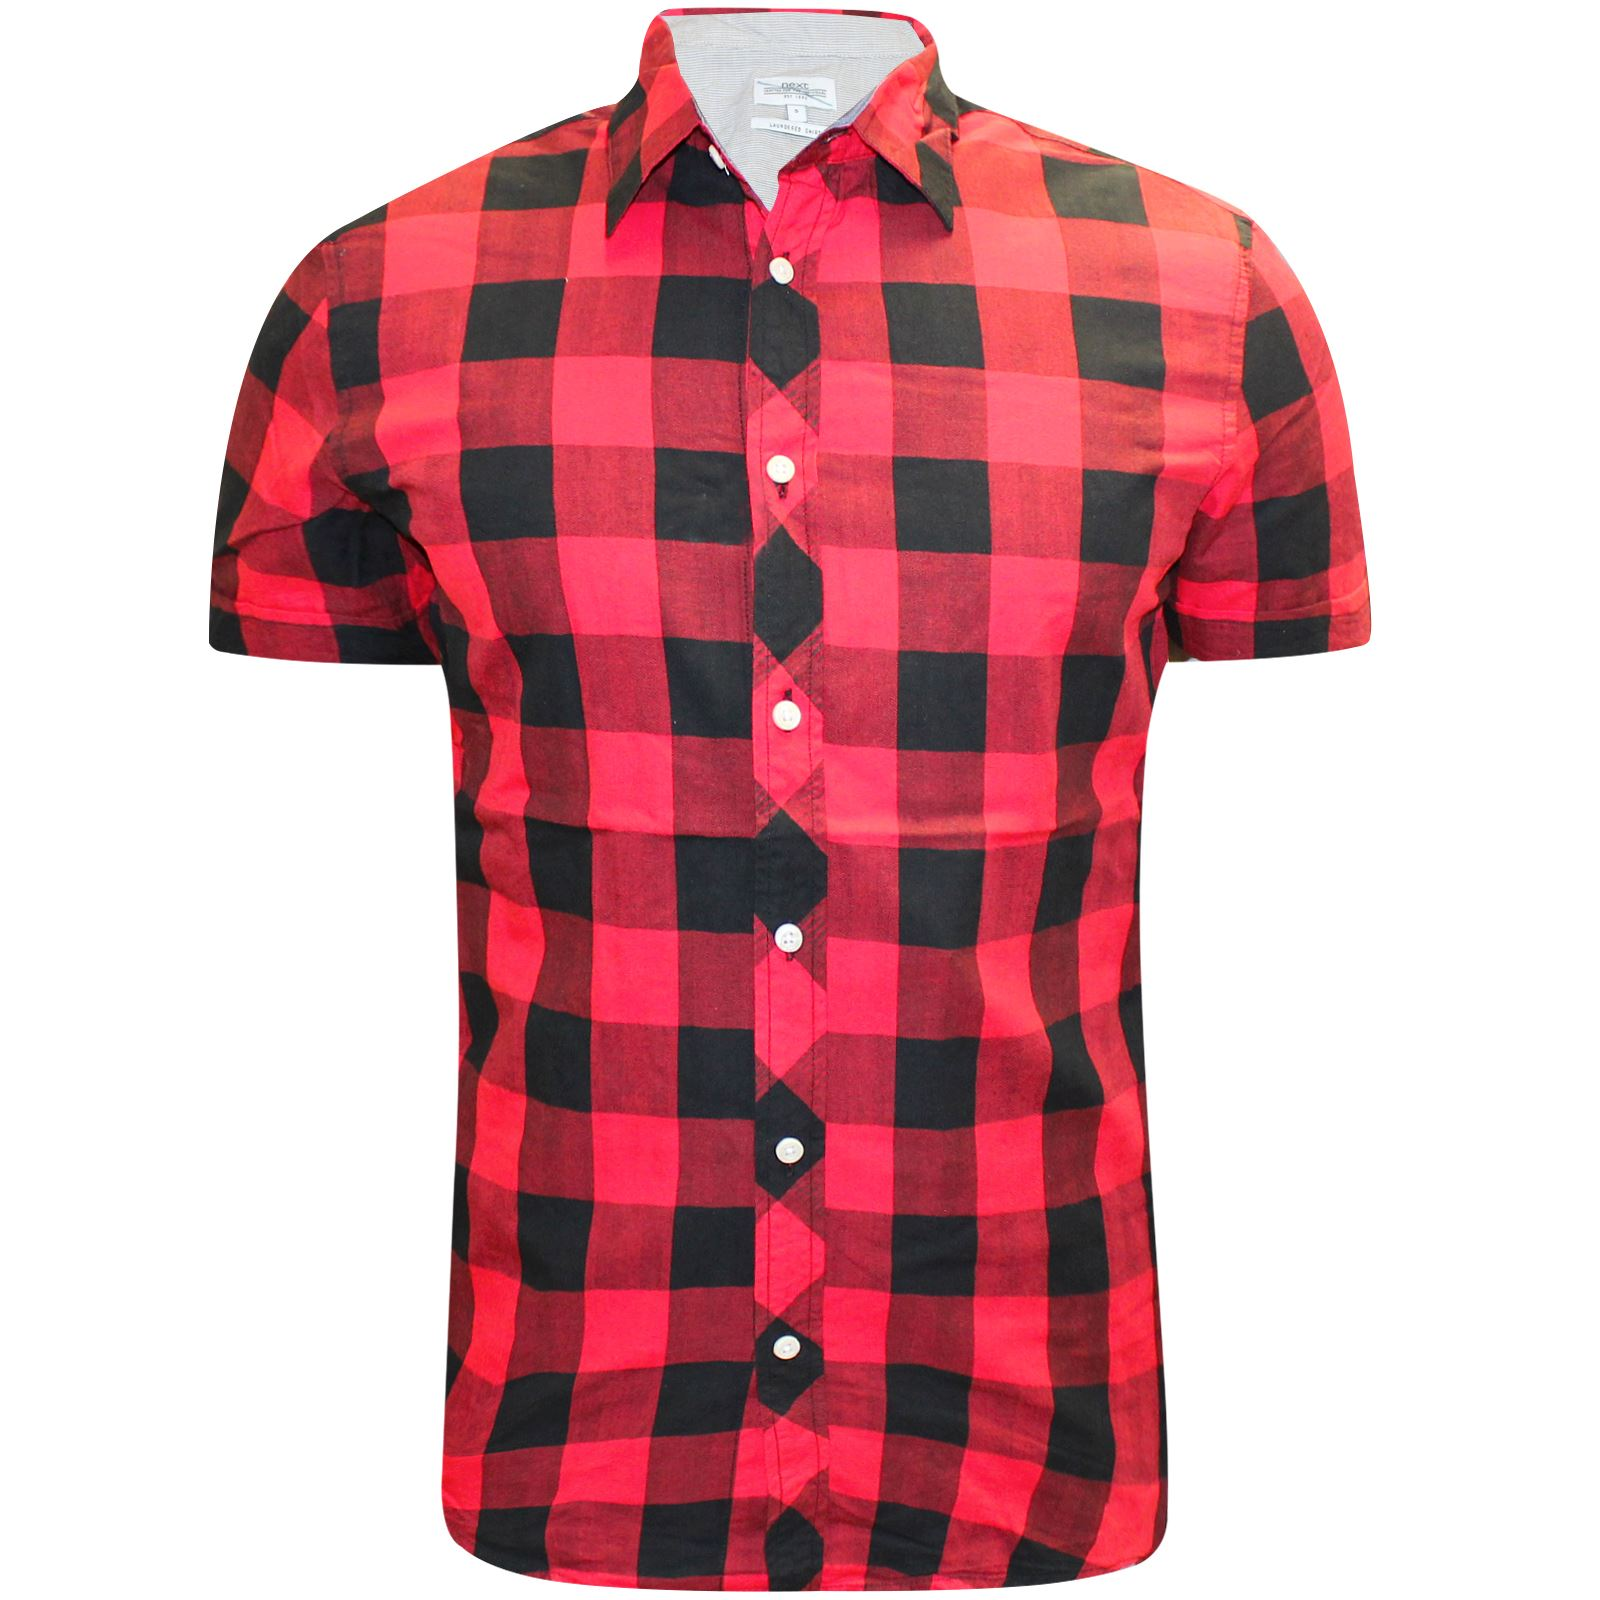 Mens-Ex-Store-Short-Sleeve-Shirt-Striped-Checked-Flannel-Summer-Office-Work